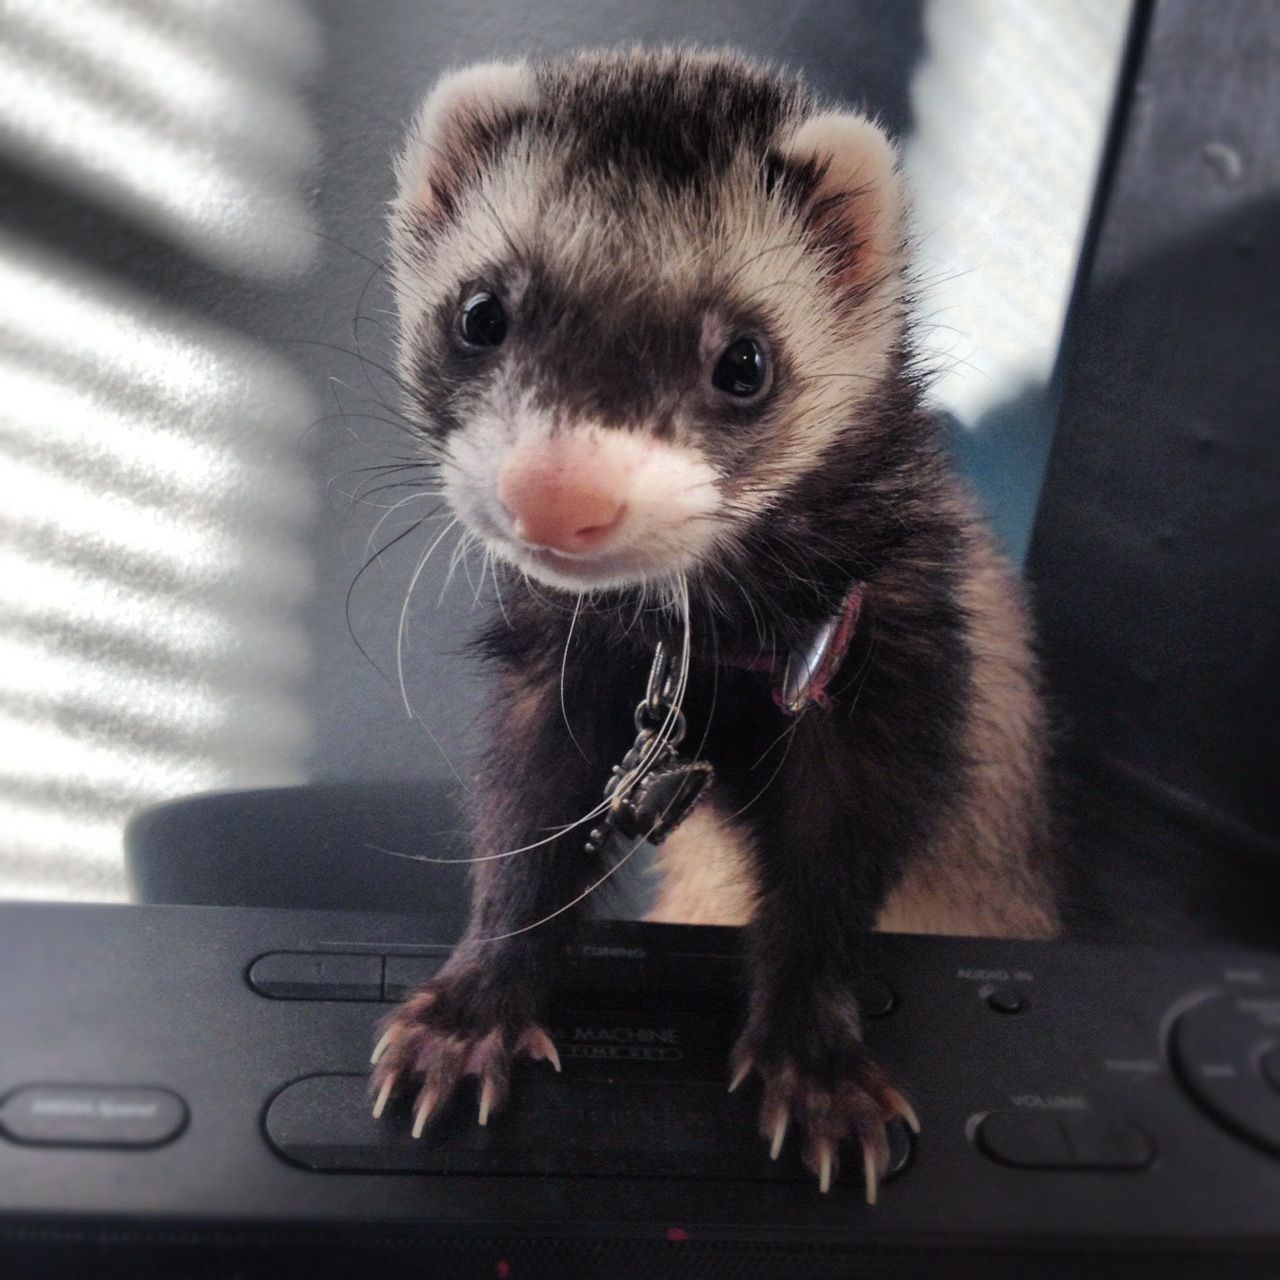 Such A Cute Little Bandit Face Cute Ferrets Pet Ferret Ferret